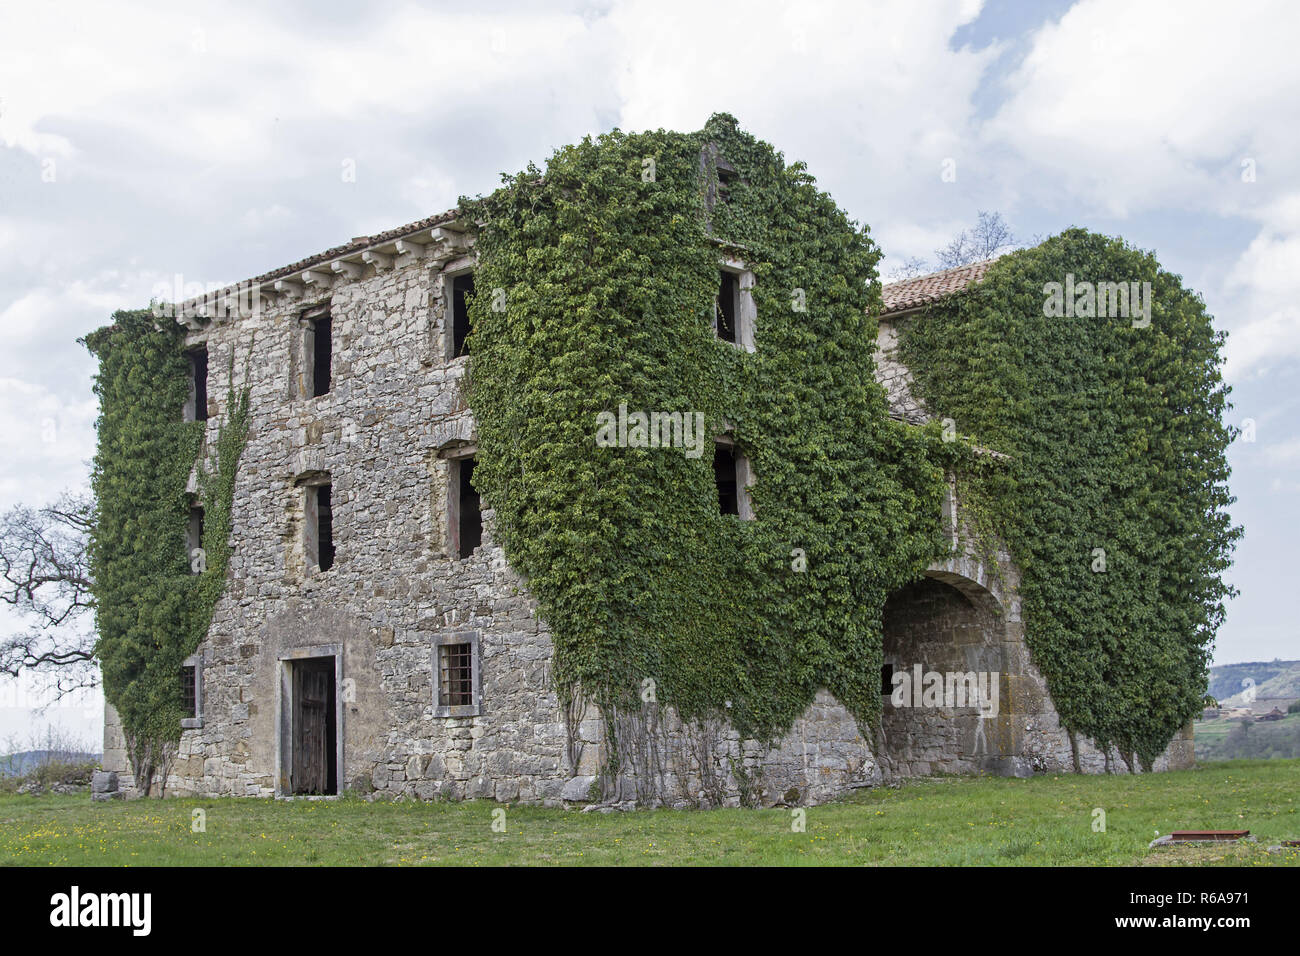 Abandoned And Dilapidated Houses Idyllically Overgrown With Plants Characterize The Idyllic Landscape - Stock Image